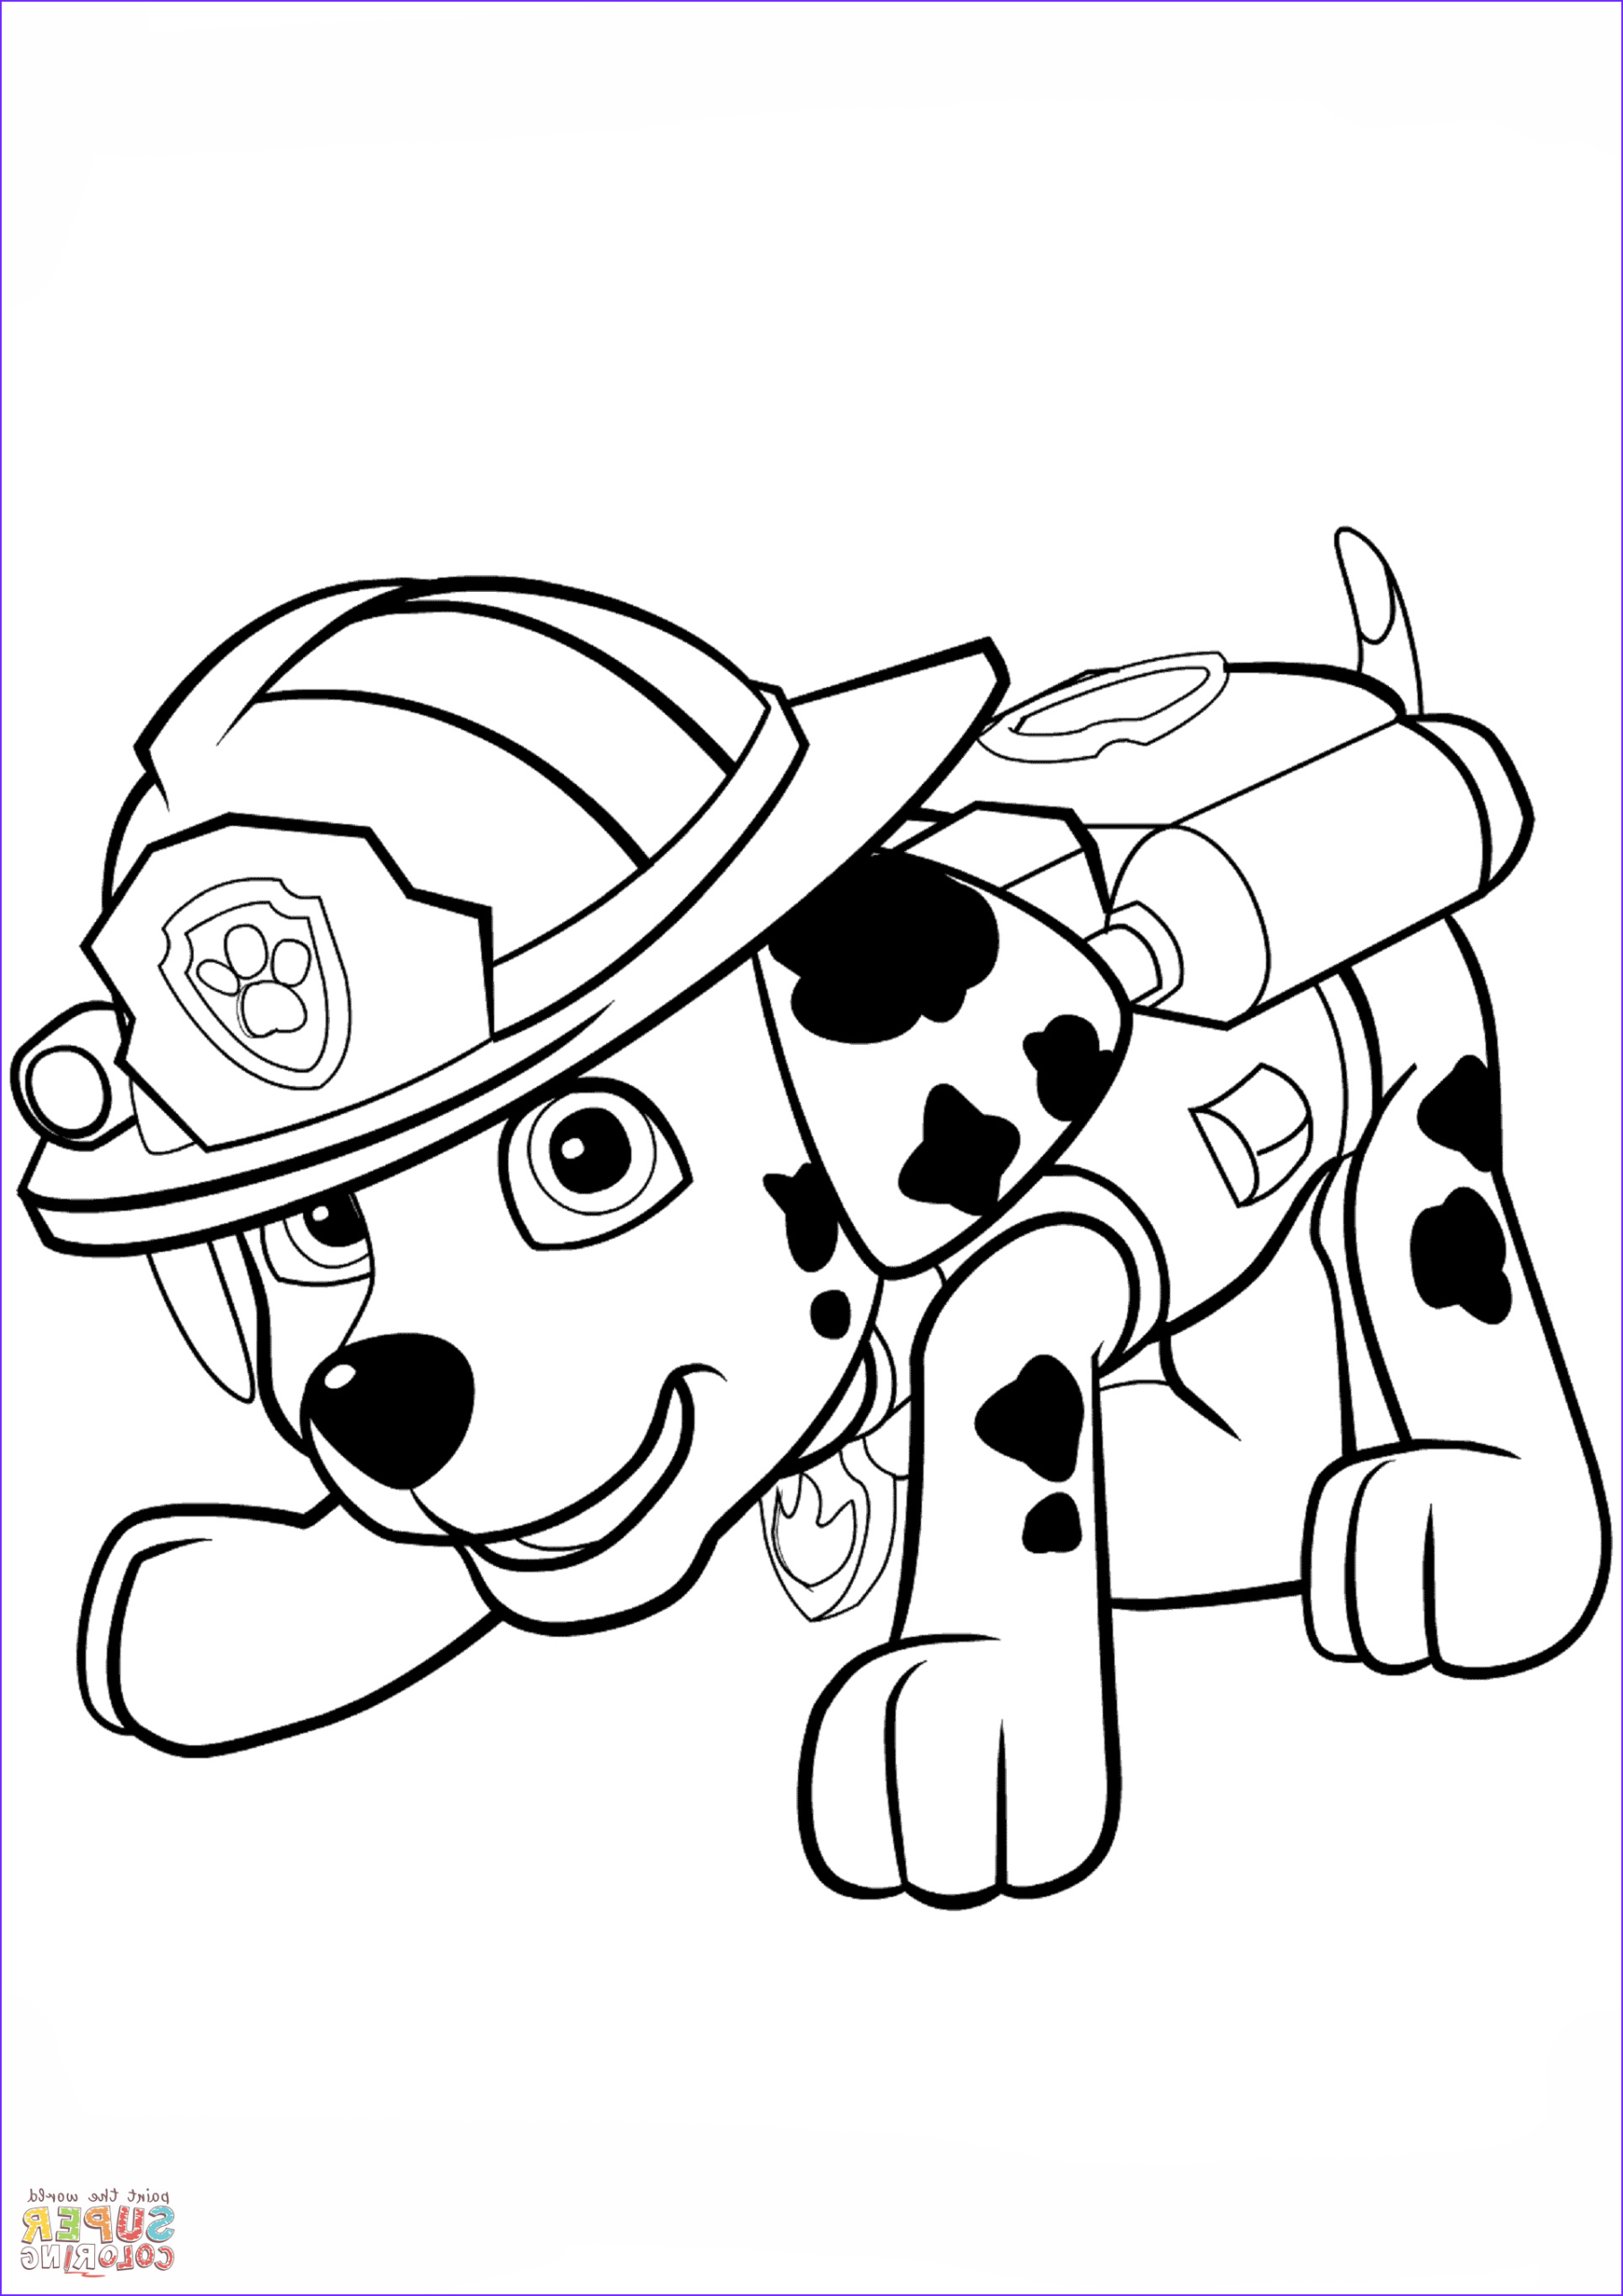 Paw Patrol Coloring Books Unique Gallery Paw Patrol Marshall Puppy Coloring Page